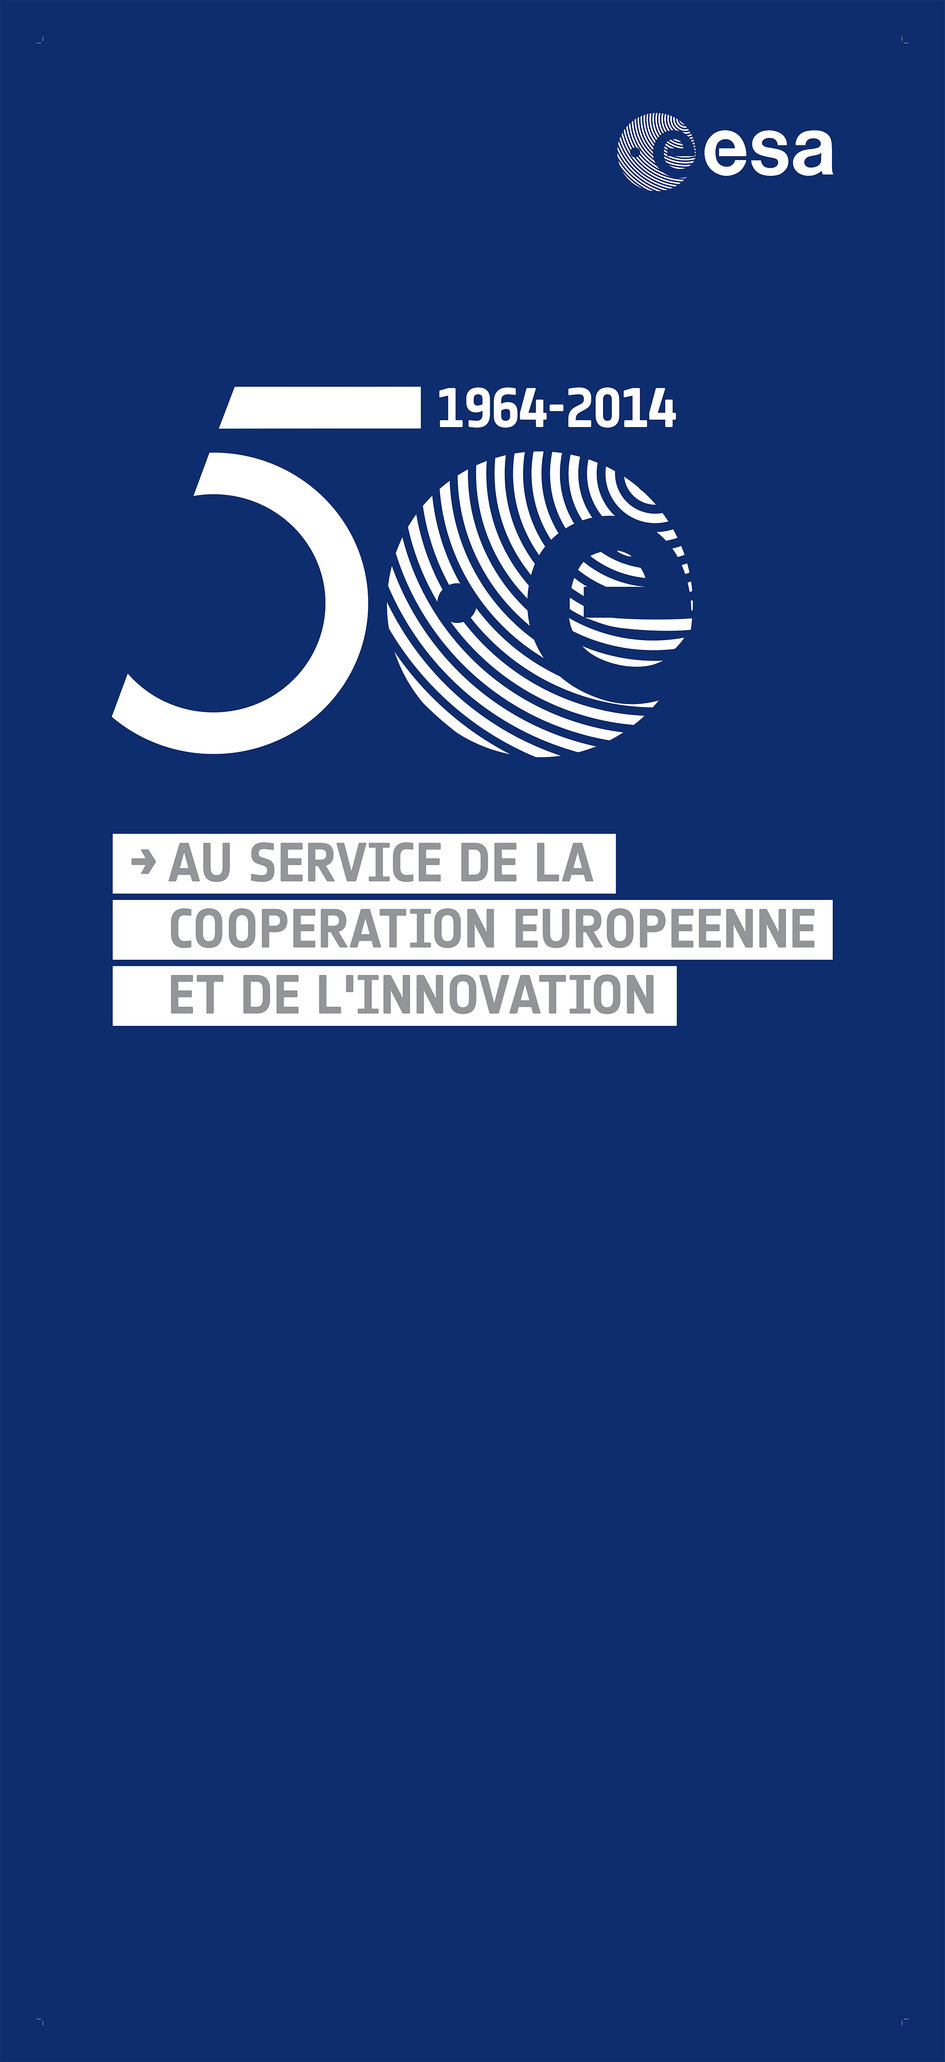 French backdrop for 50 years of European cooperation in Space